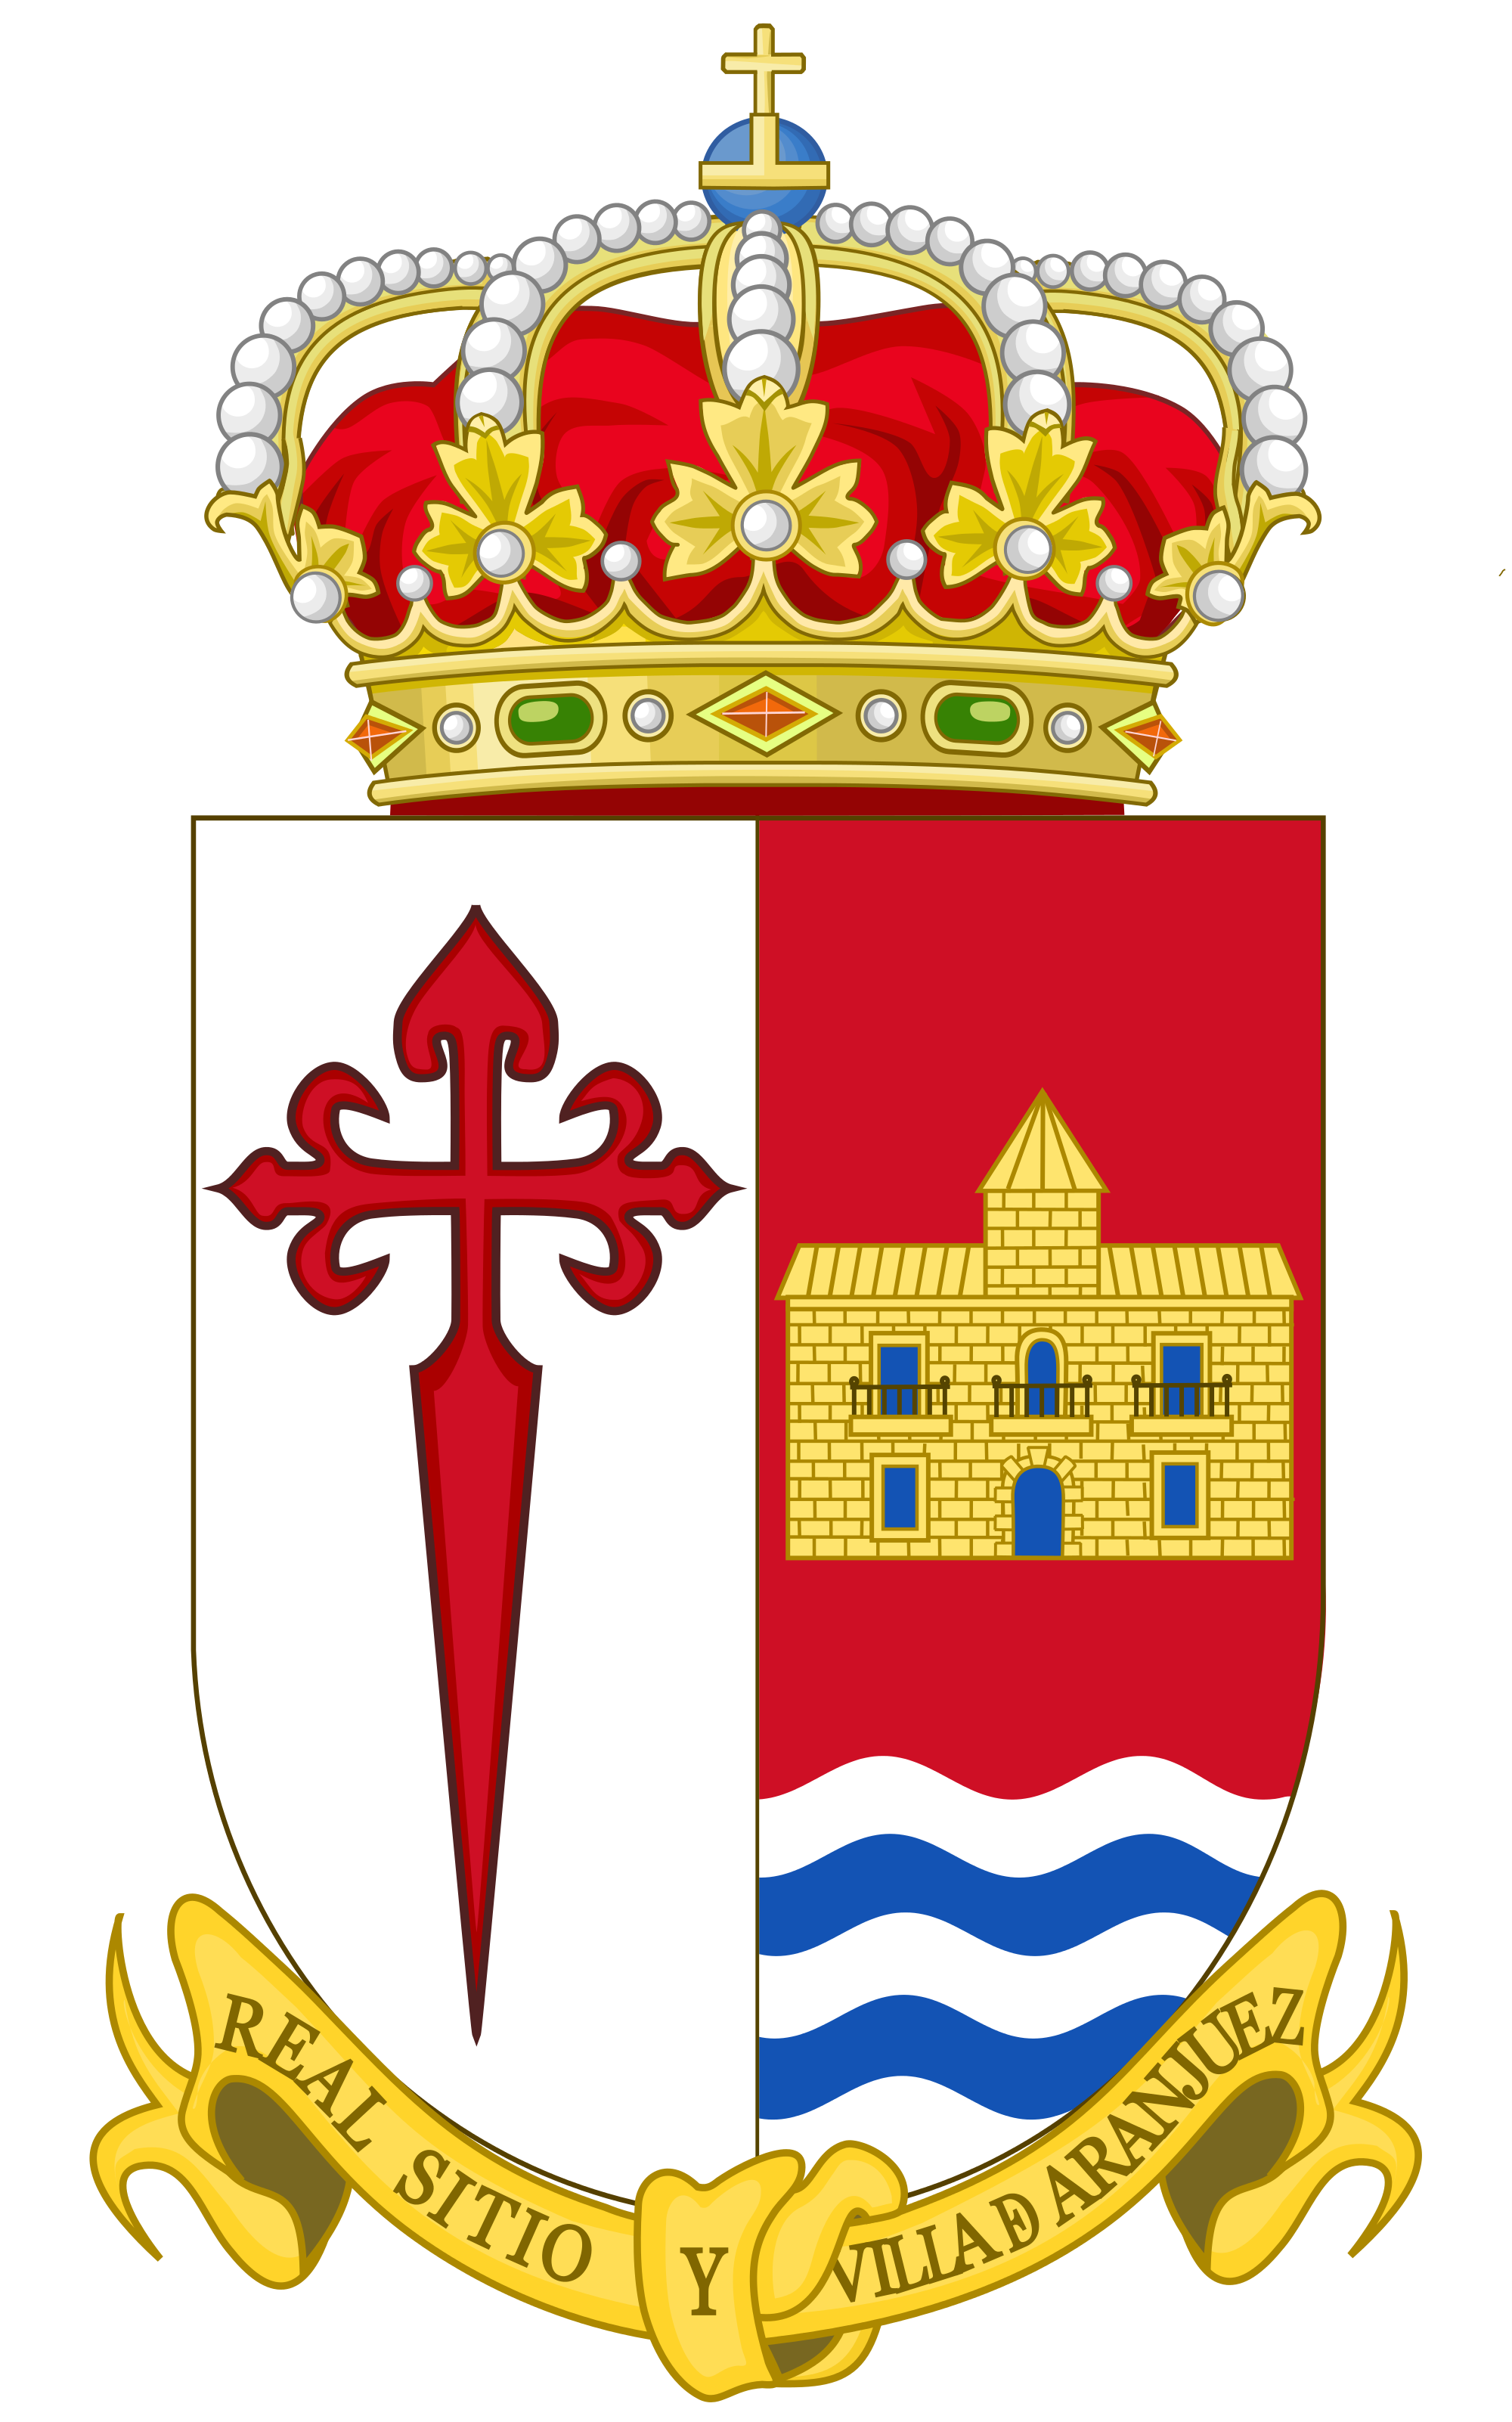 File:Coat of Arms of Aranjuez.svg.